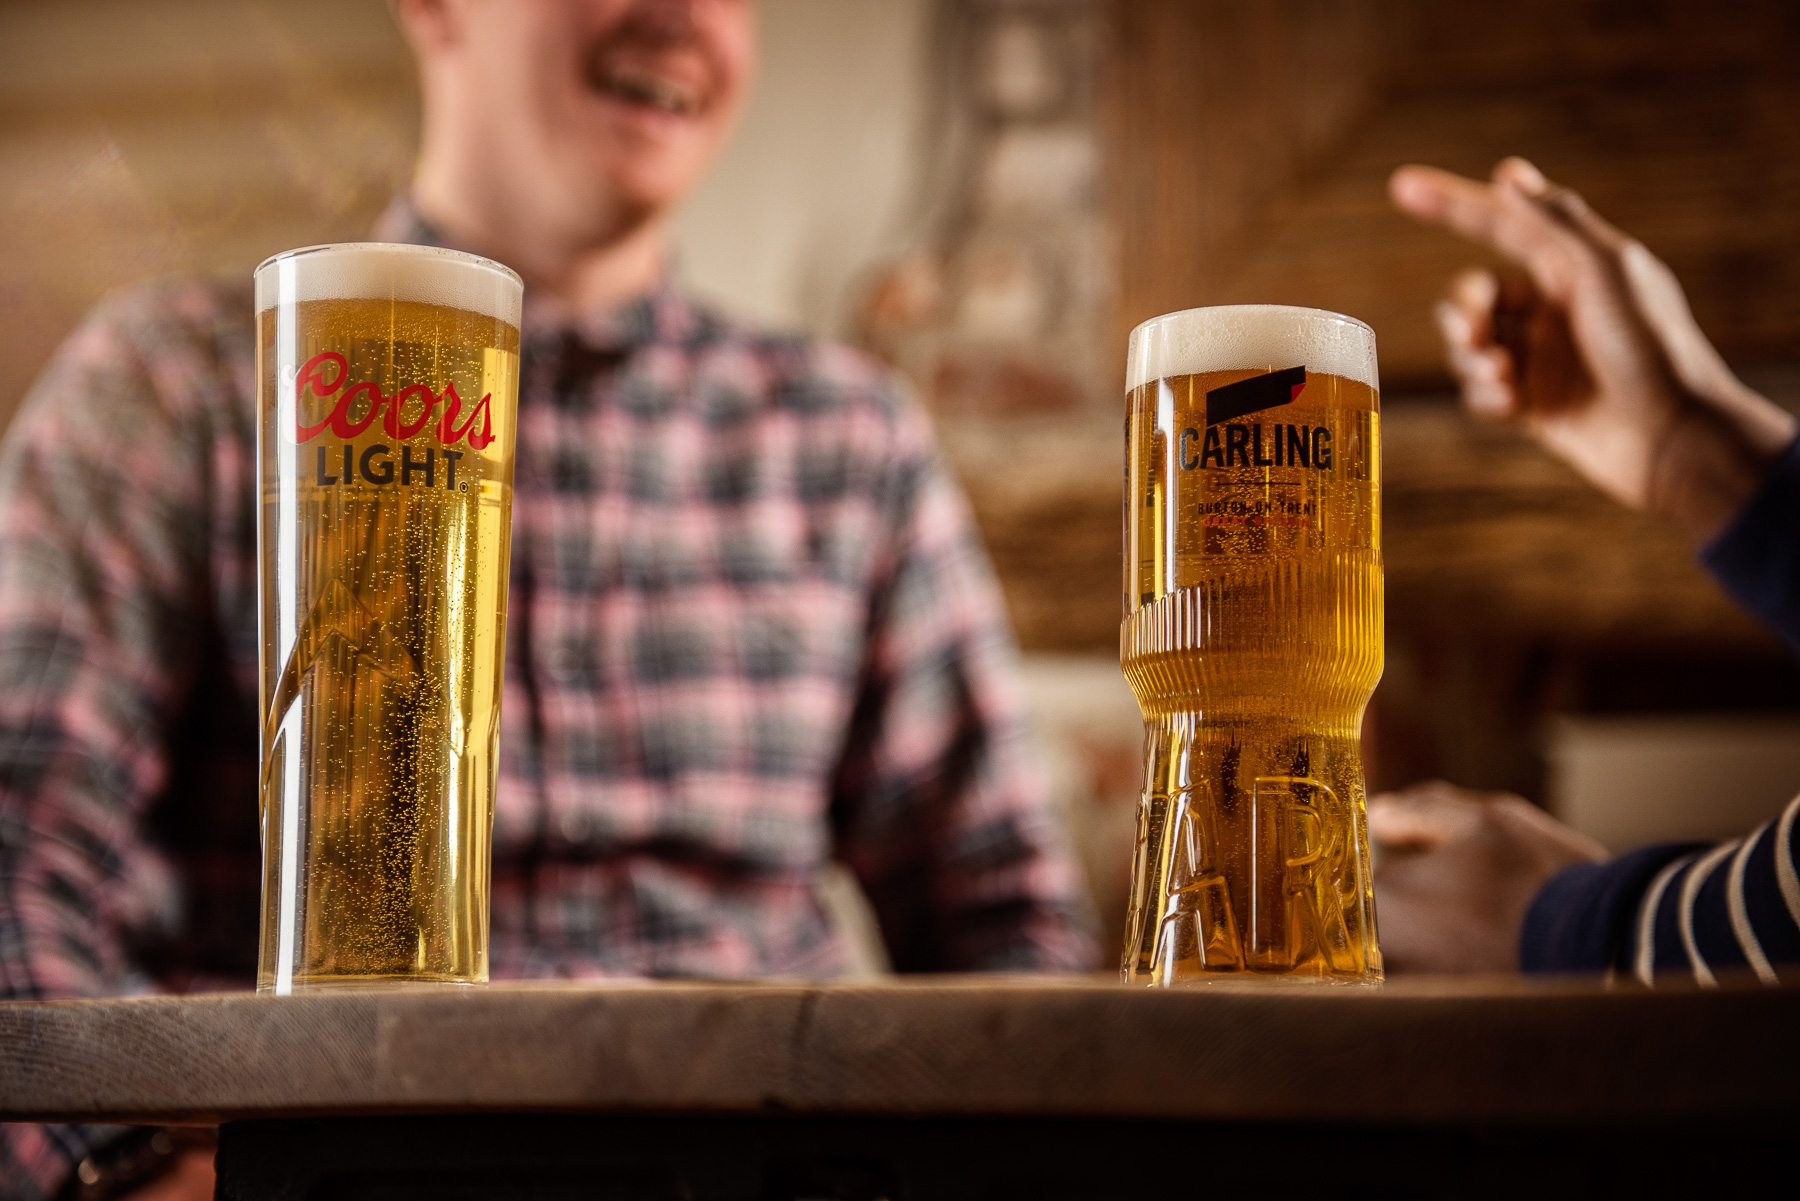 Coors light and Carling pints or larger on a table in a pub setting